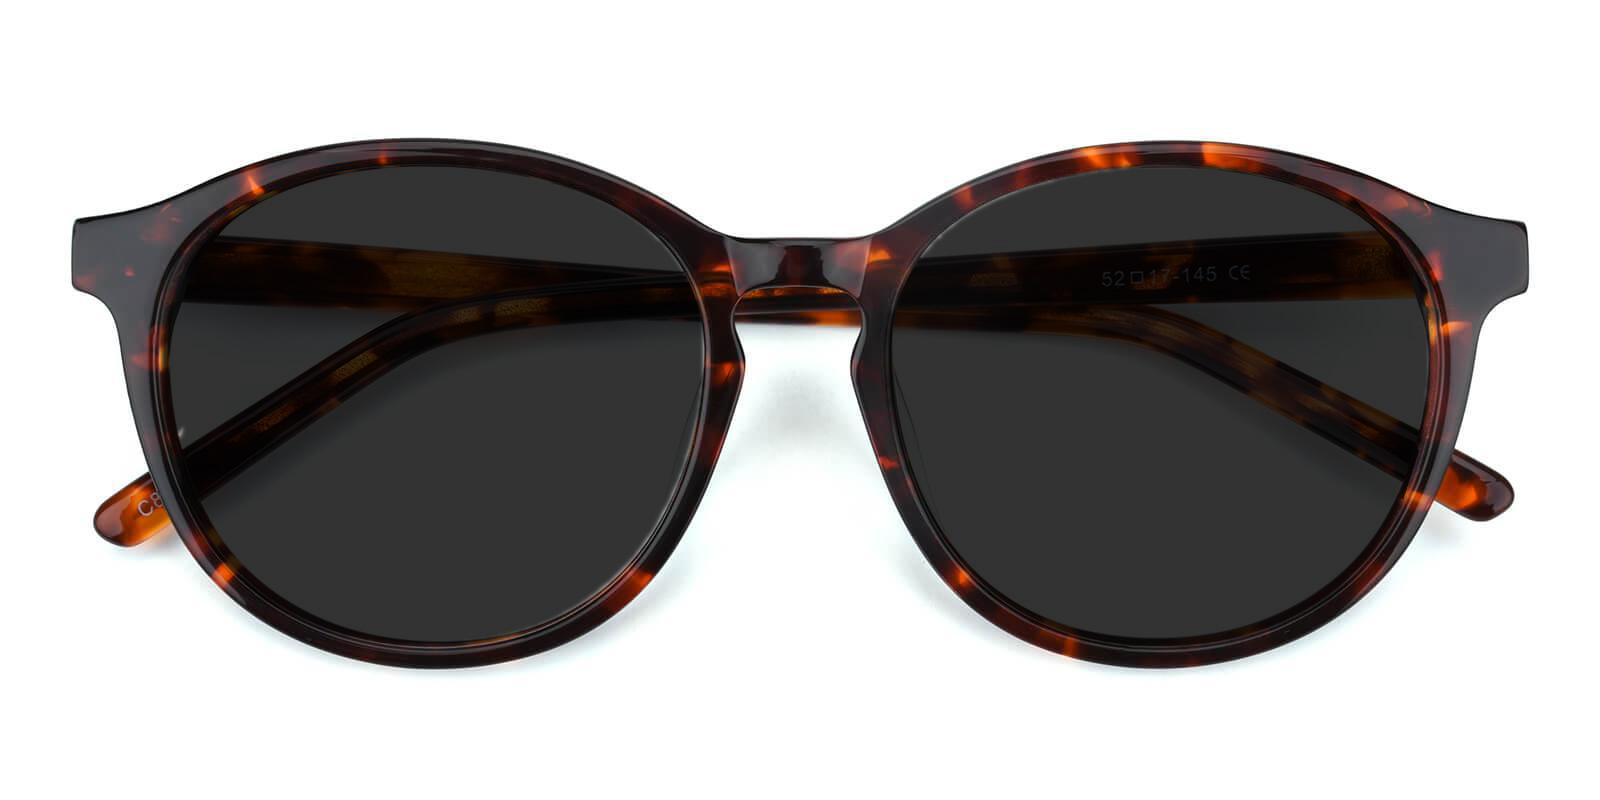 Sun Tortoise Acetate Sunglasses , UniversalBridgeFit Frames from ABBE Glasses